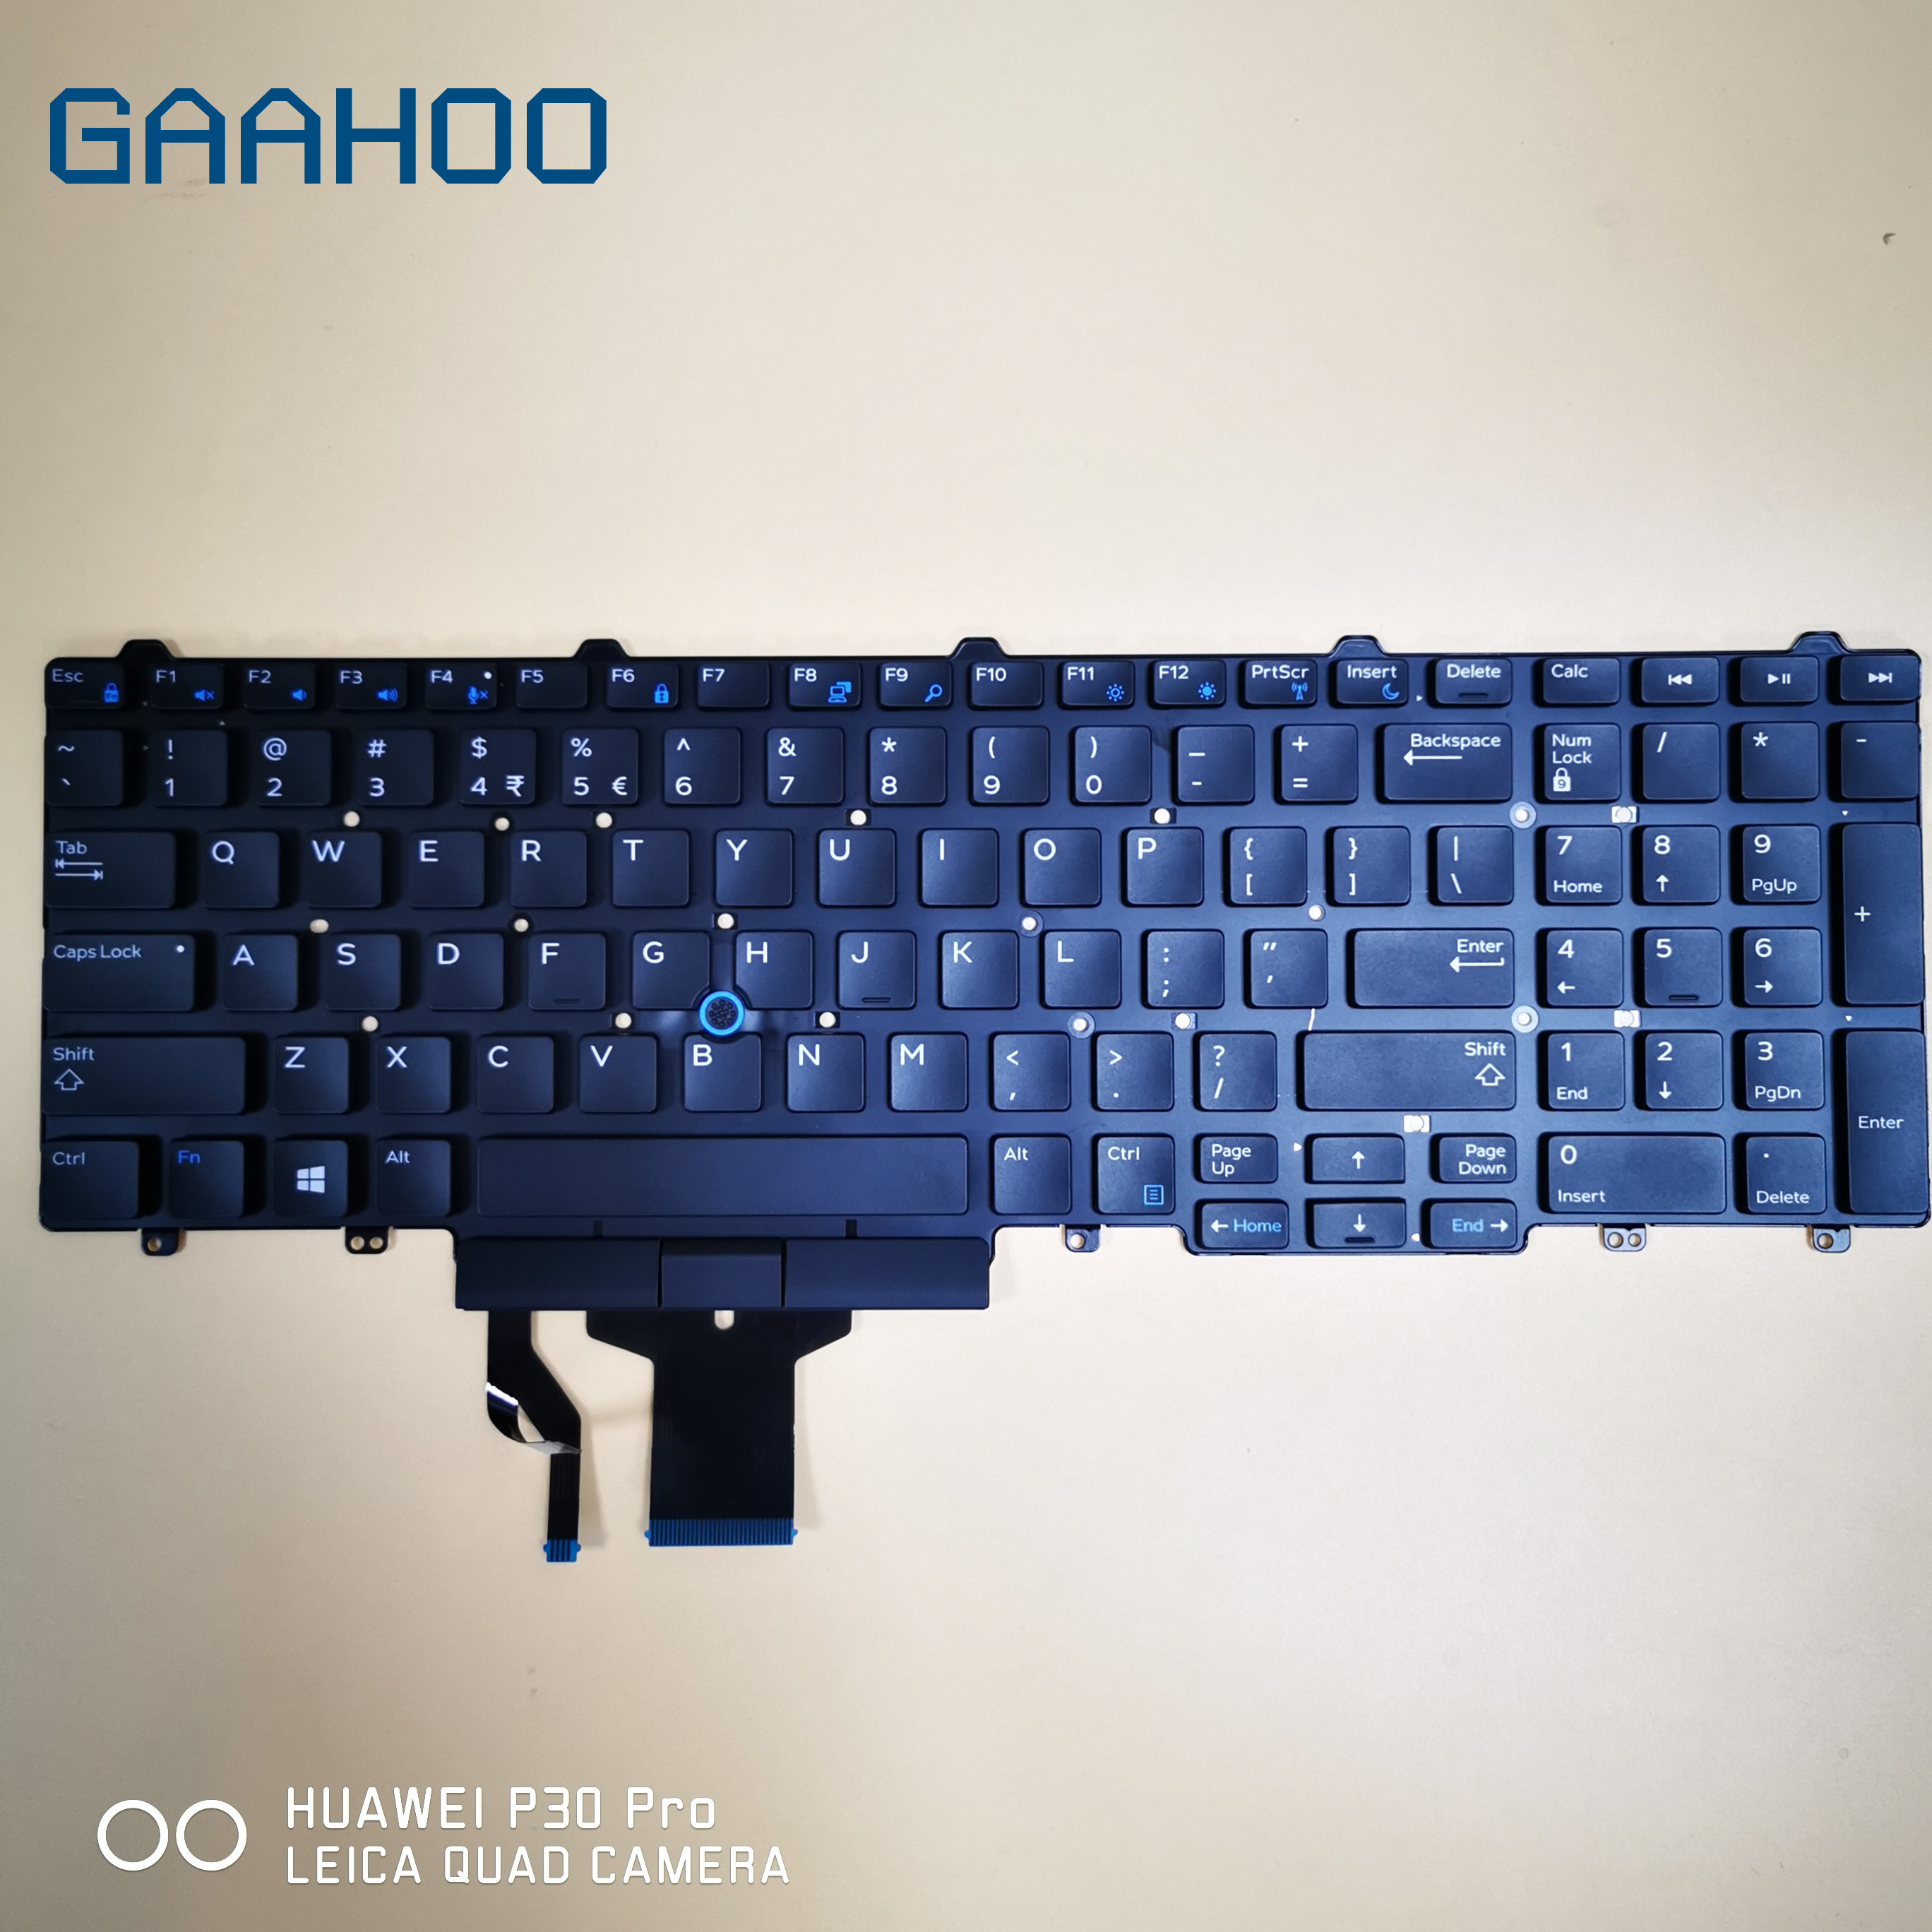 US keyboard for <font><b>Dell</b></font> Latitude 5550 5570 5580 5590 PRECISION 3510 3520 3530 <font><b>3540</b></font> 7510 7520 7530 7710 7720 LAPTOP w/ TRUCKPOINT image